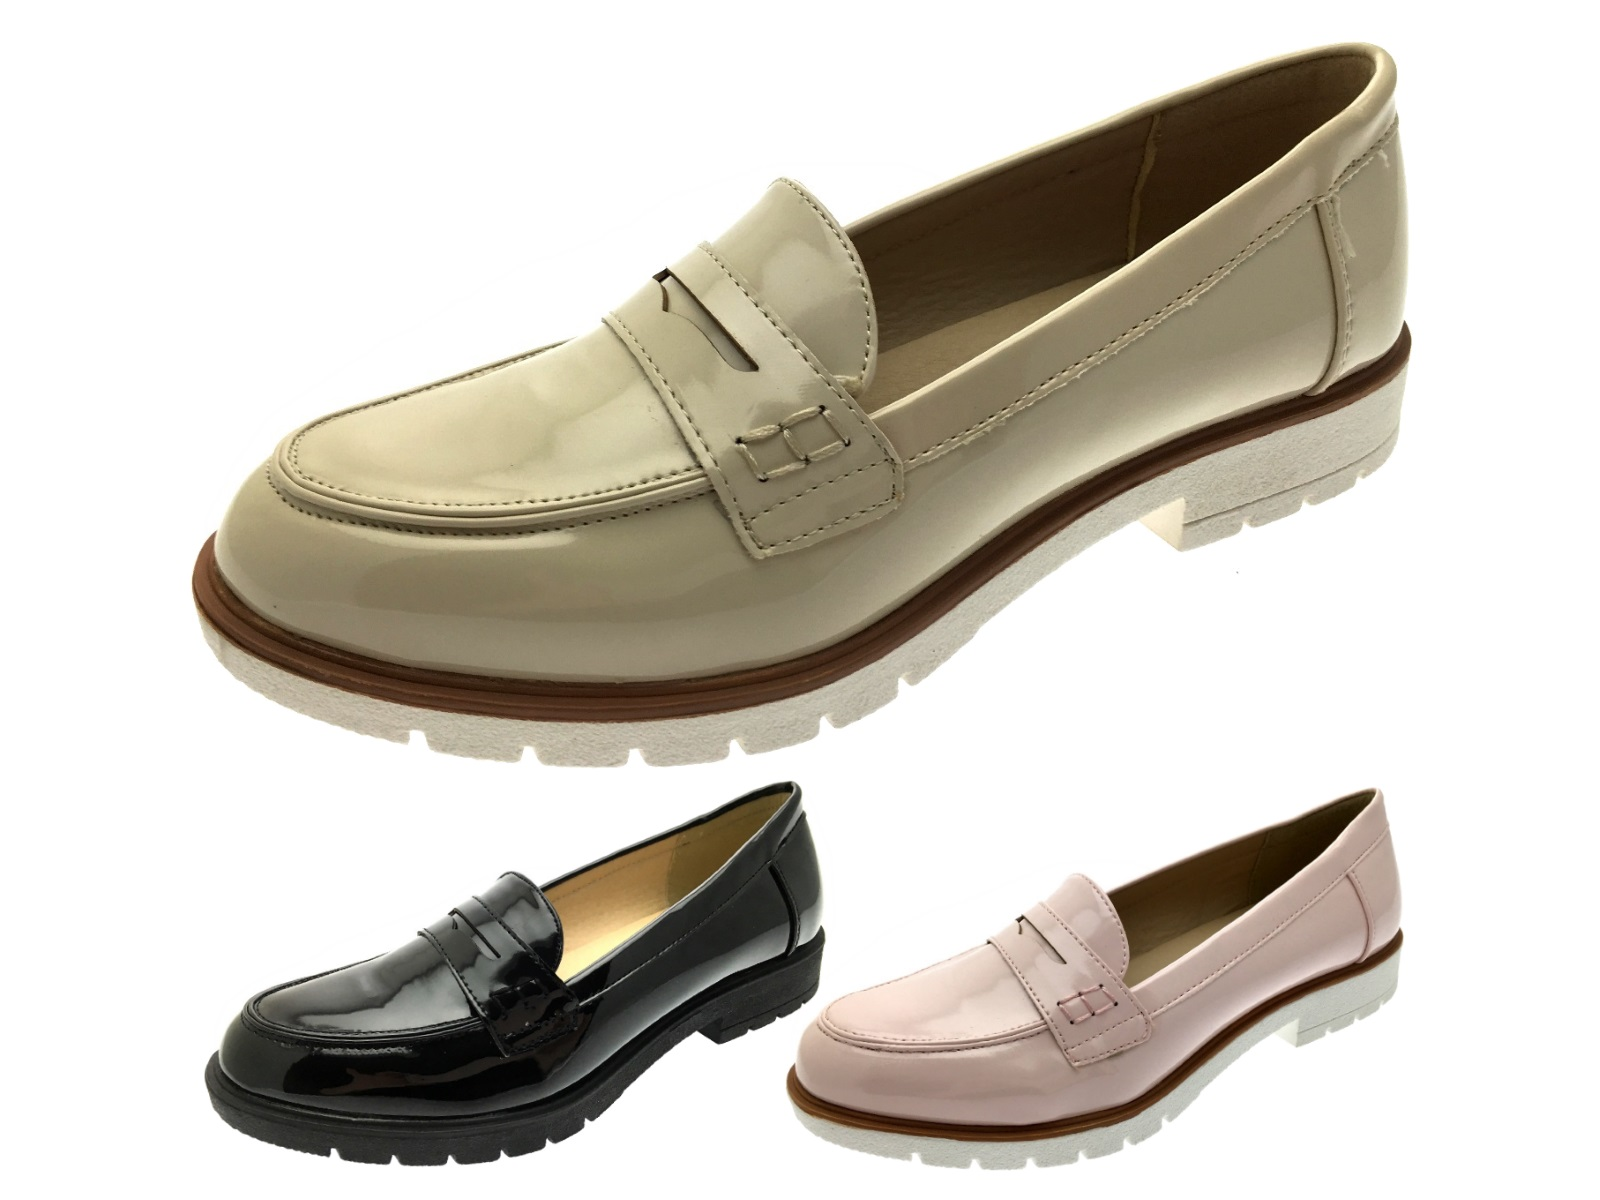 Stylish and chic, loafers are the go-to shoe for a laidback daytime look. Our selection of loafers for women come in classic styles and quality materials so you can find your perfect pair online today.